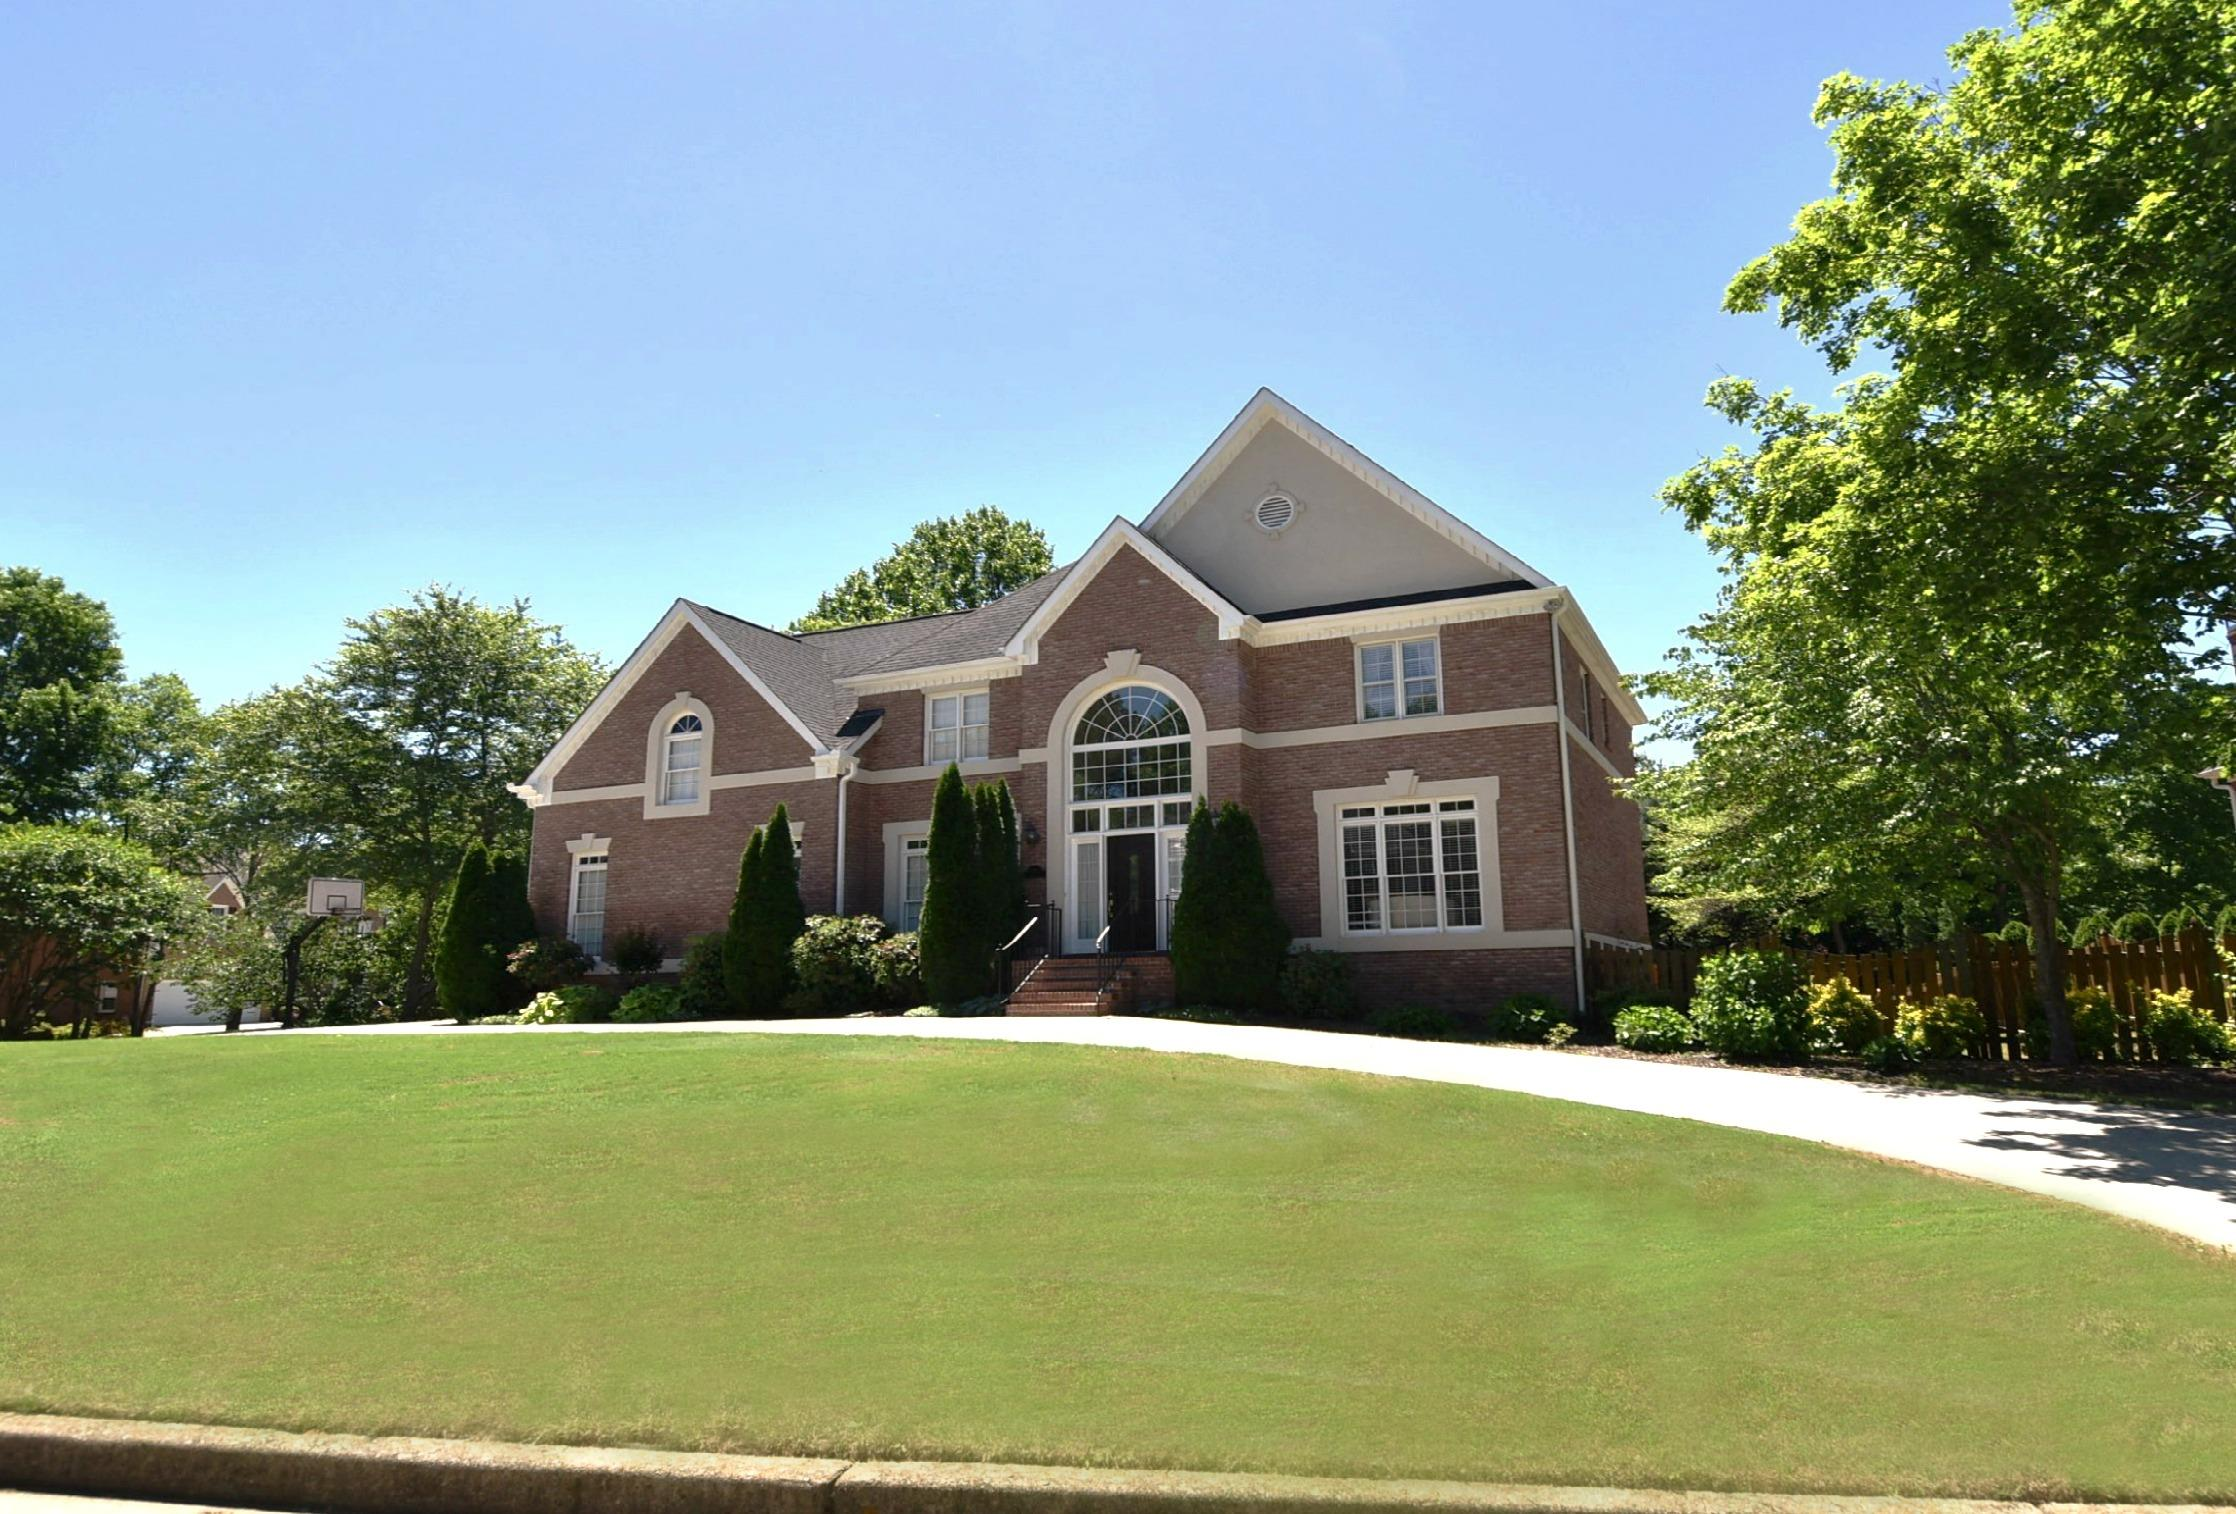 Tuxford brick with in-law suite Chattahoochee High